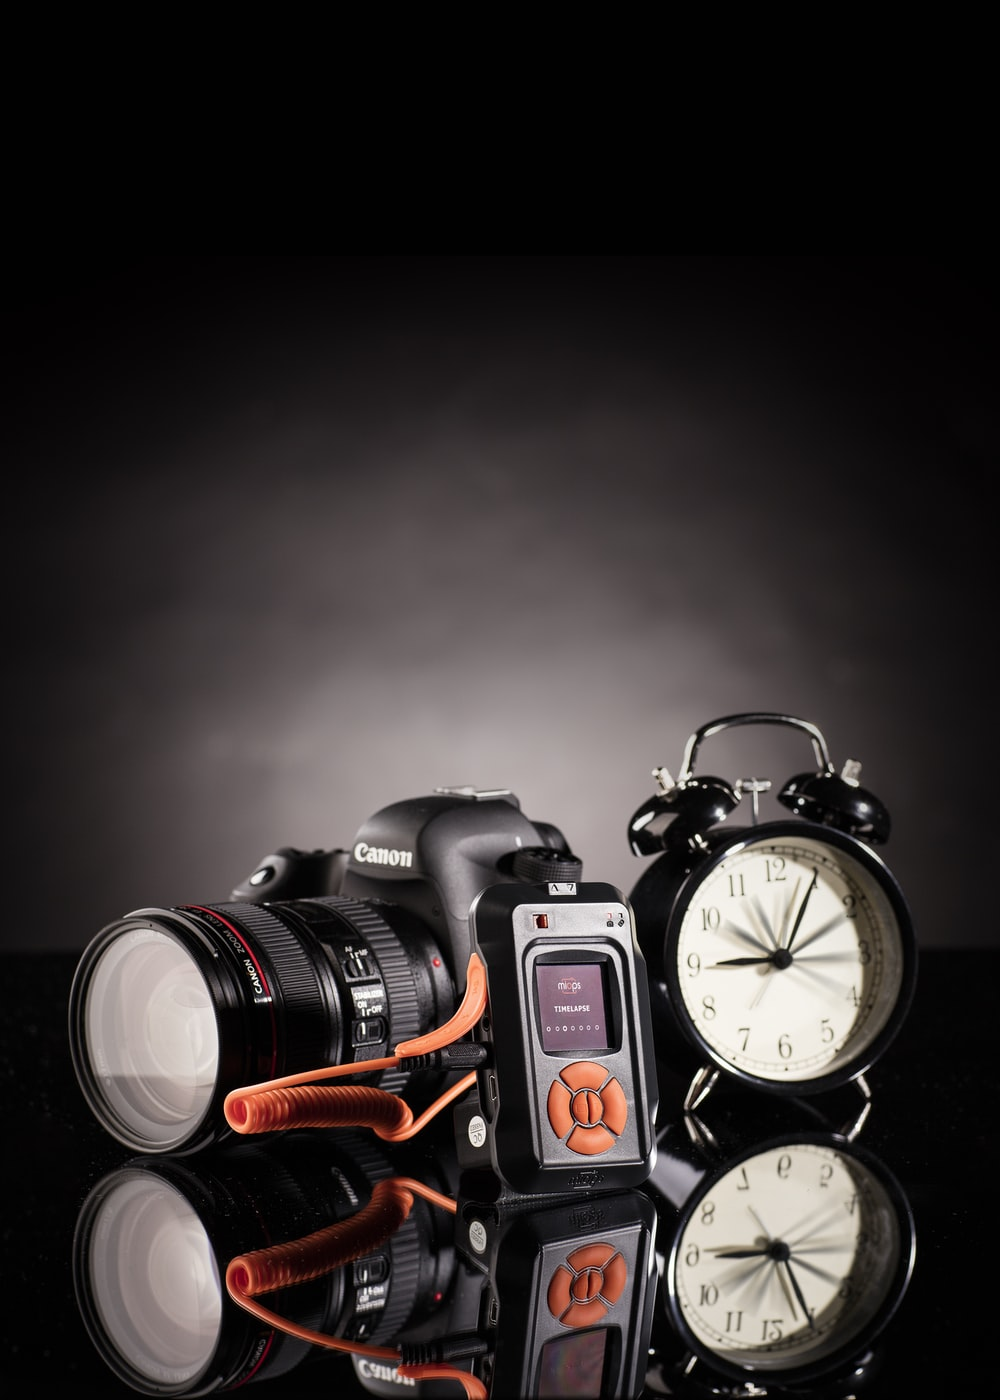 photo of Canon DSLR camera beside black twin bell alarm clock